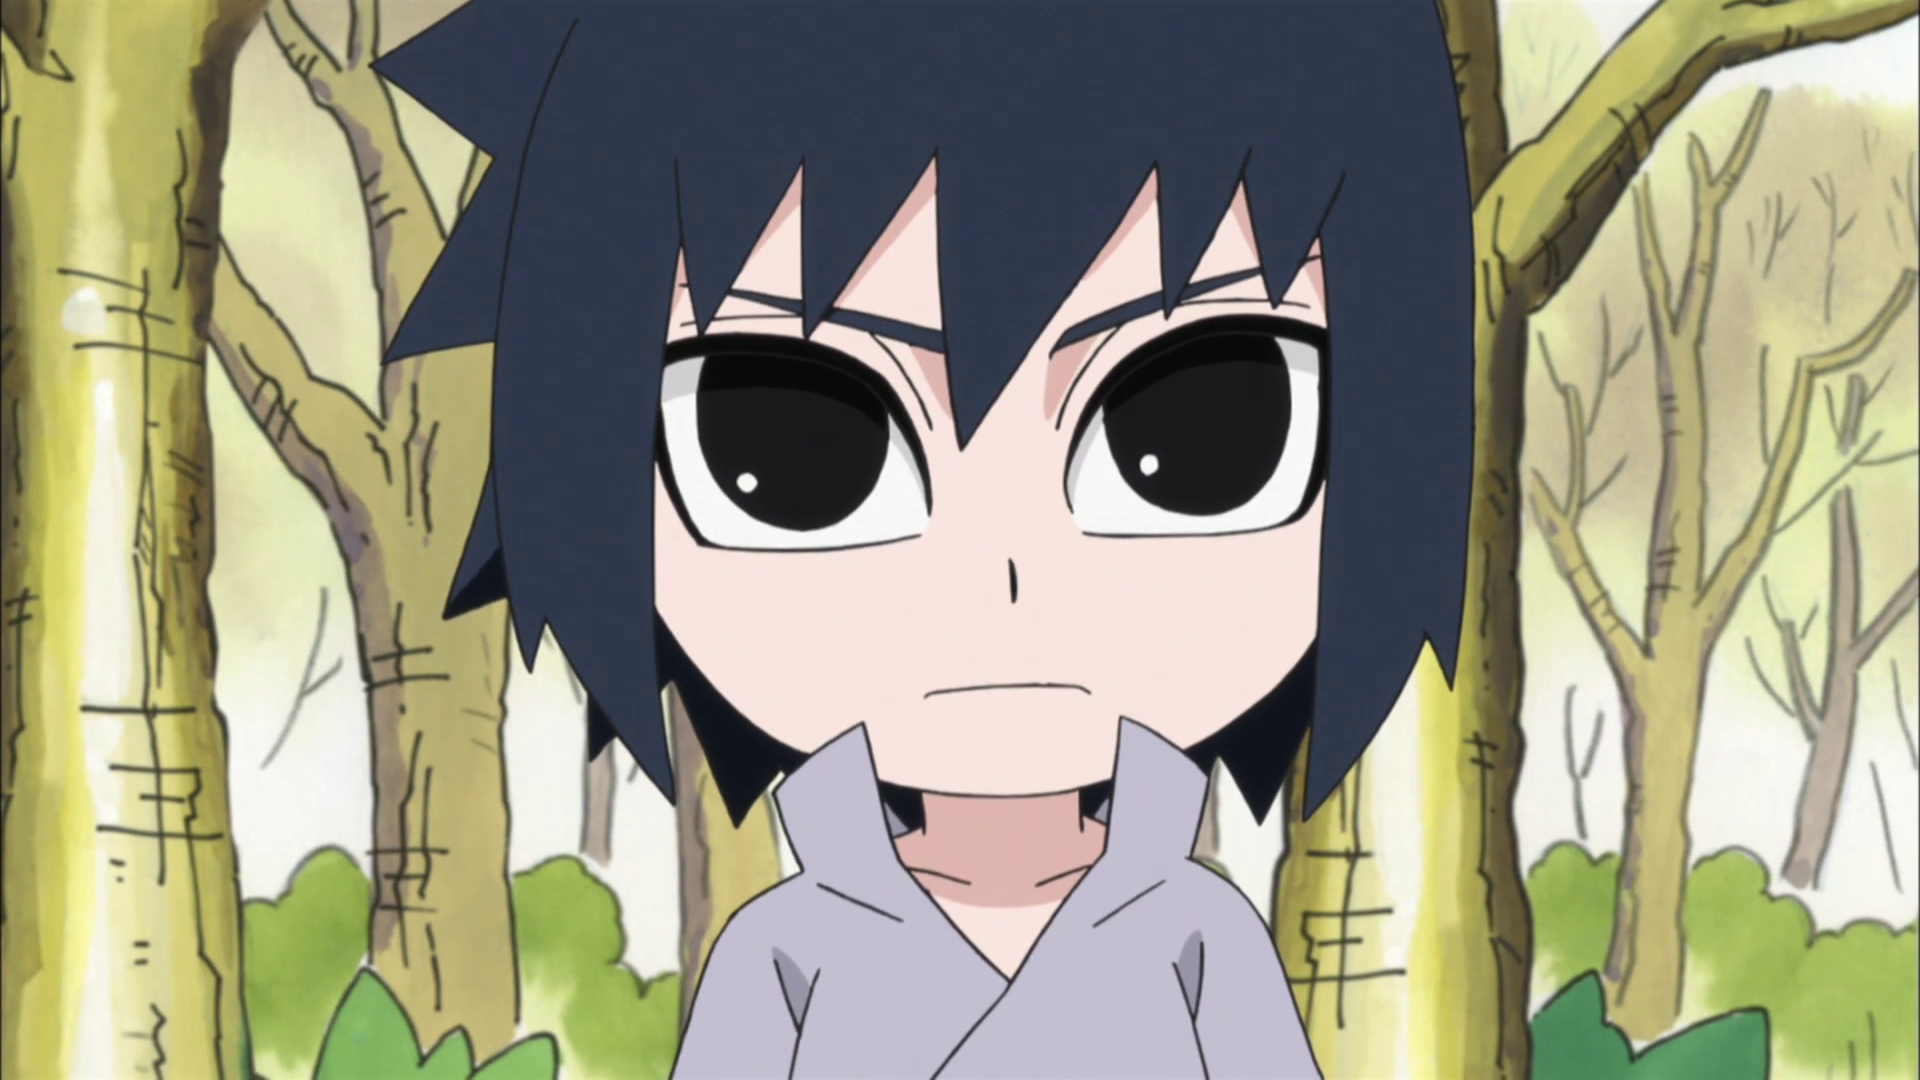 Top Wallpaper Naruto Rock Lee - latest?cb\u003d20130703064639  Picture_244626.png/revision/latest?cb\u003d20130703064639